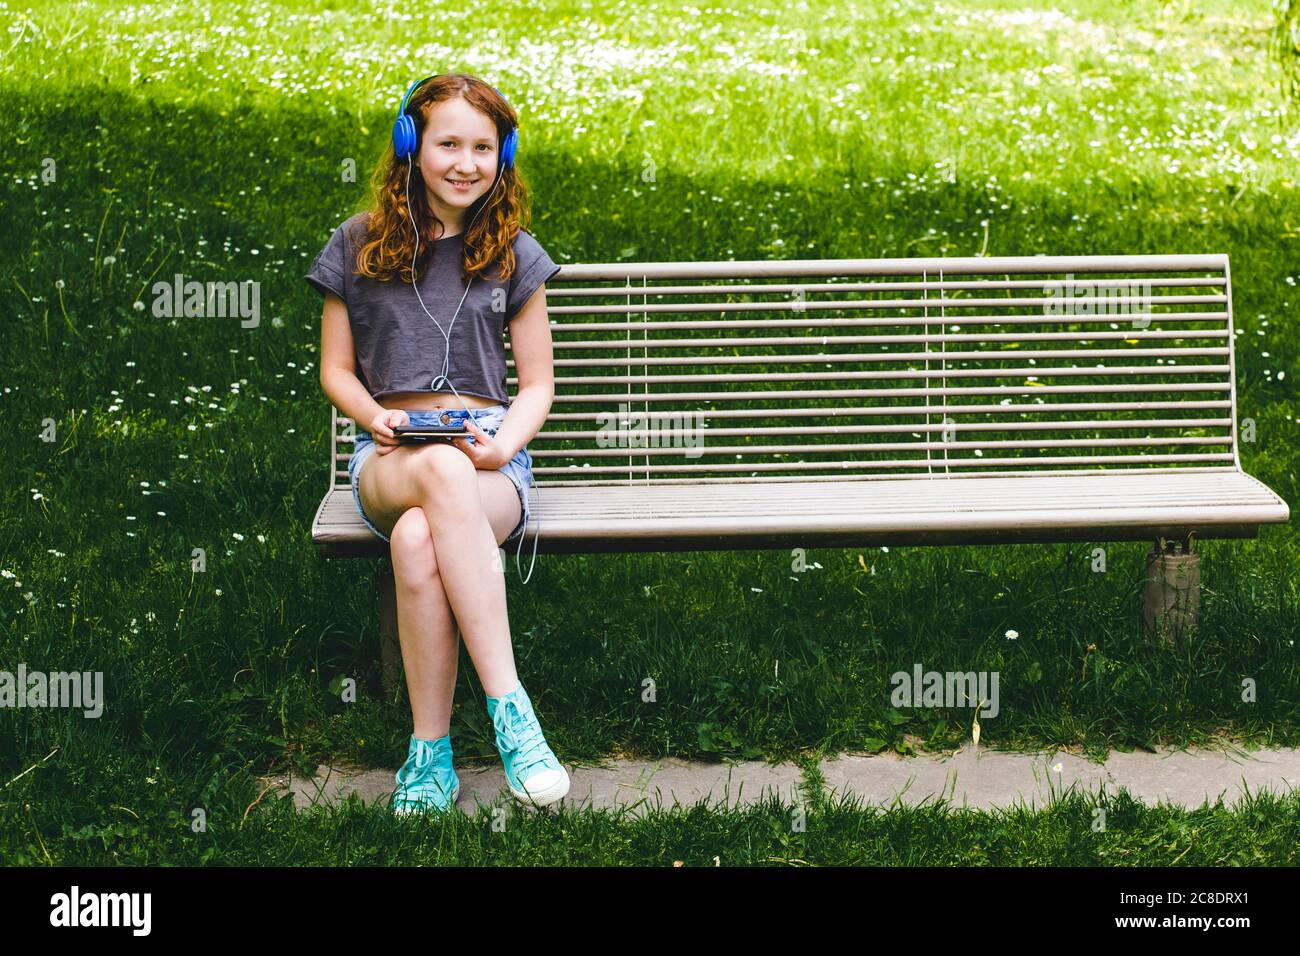 Smiling girl listening music through headphones while sitting on bench at park Stock Photo